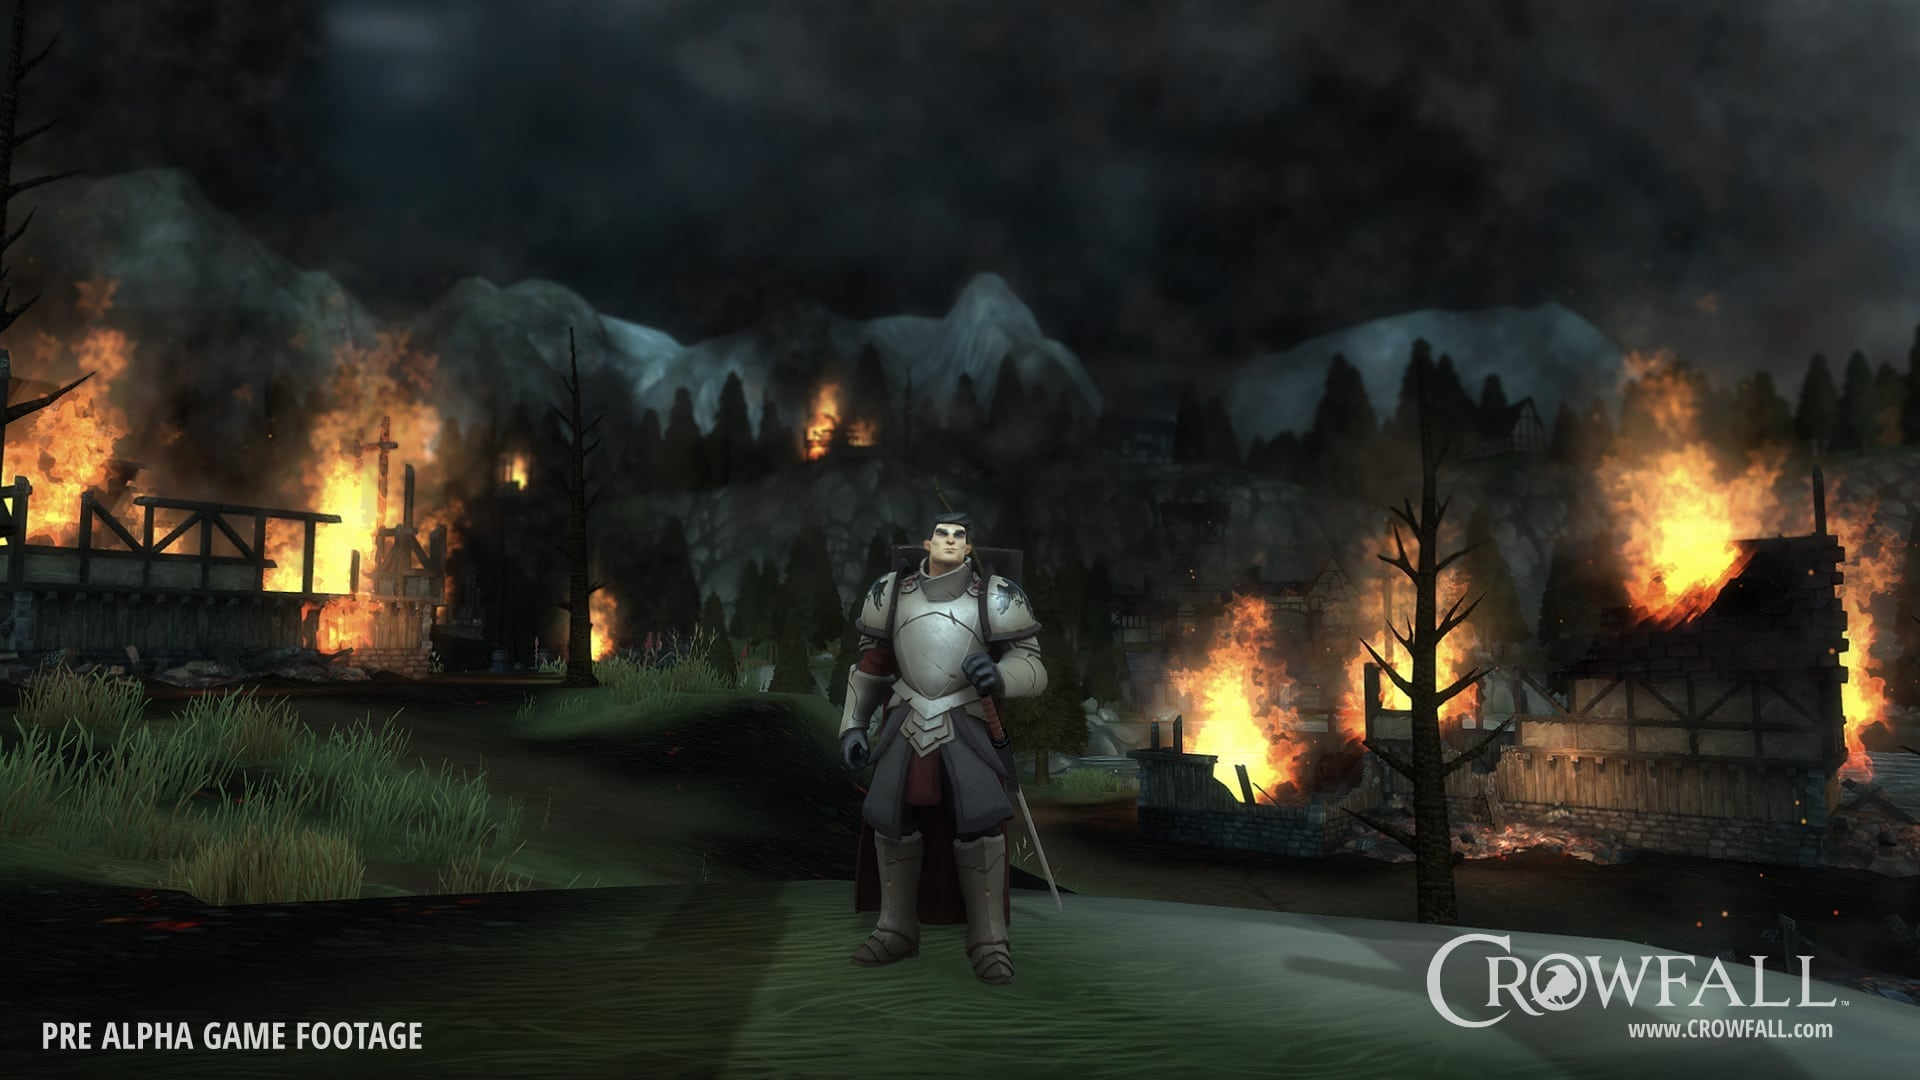 Crowfall - Gameplay screenshot 2